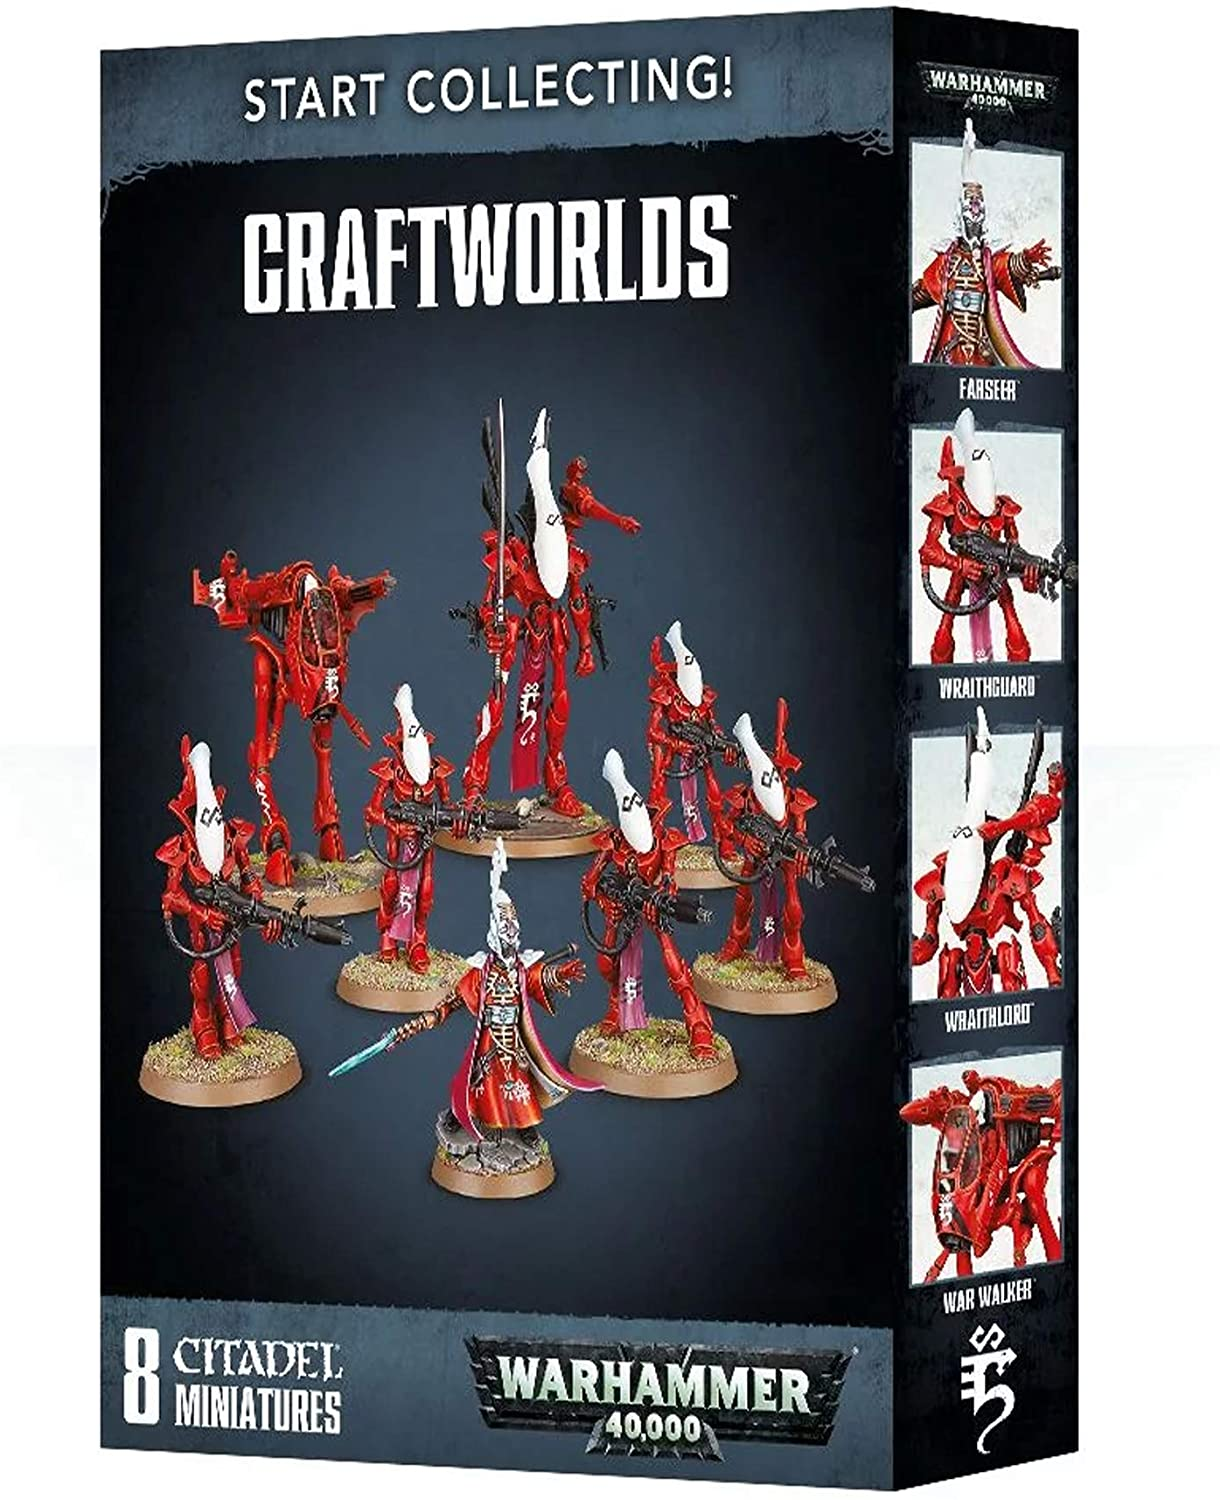 Start Collecting! - Craftworlds